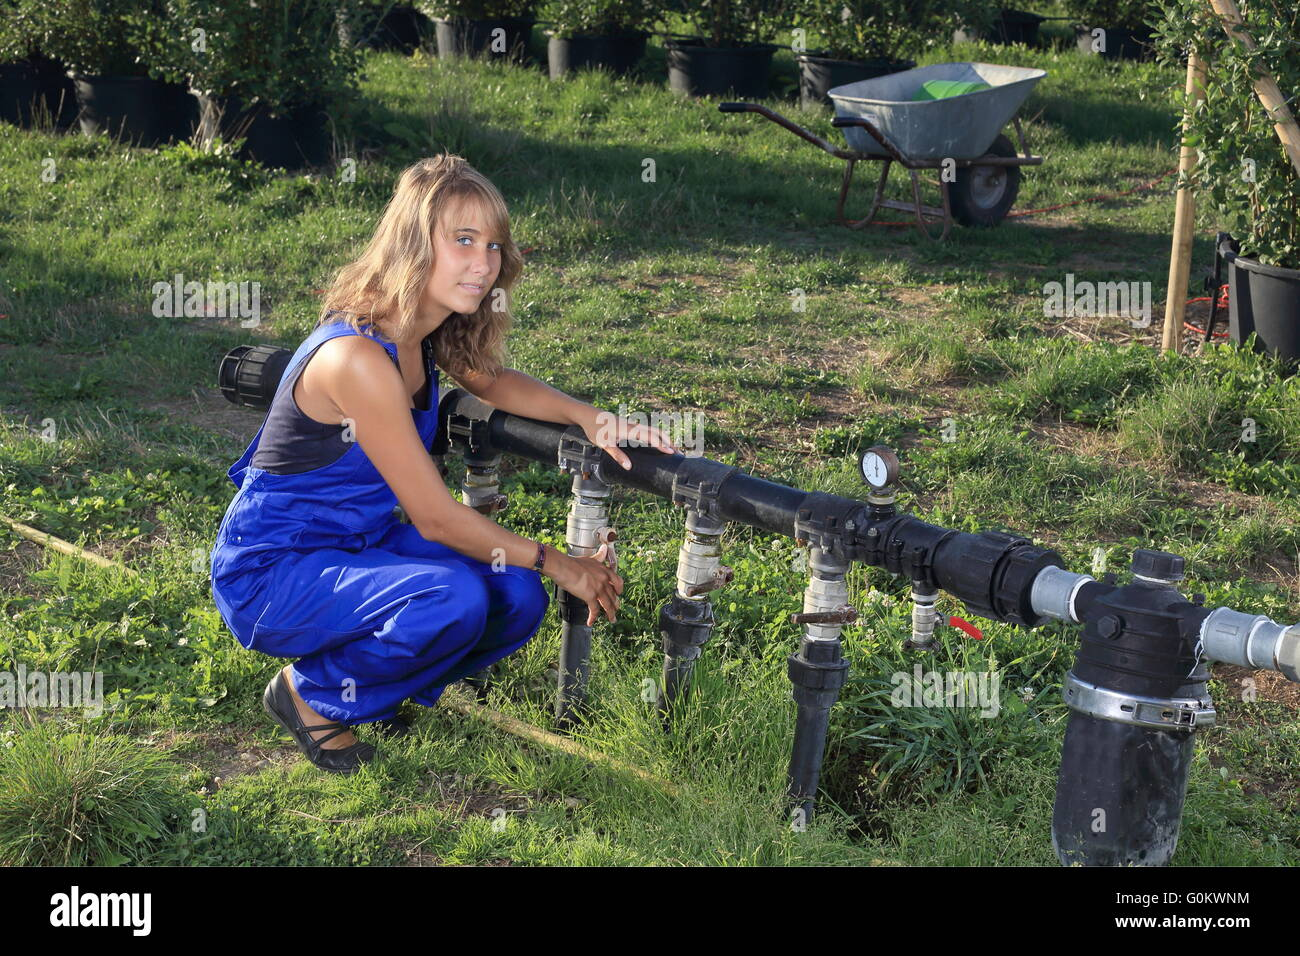 A Nursery gardening watering with a irrigation system - Stock Image